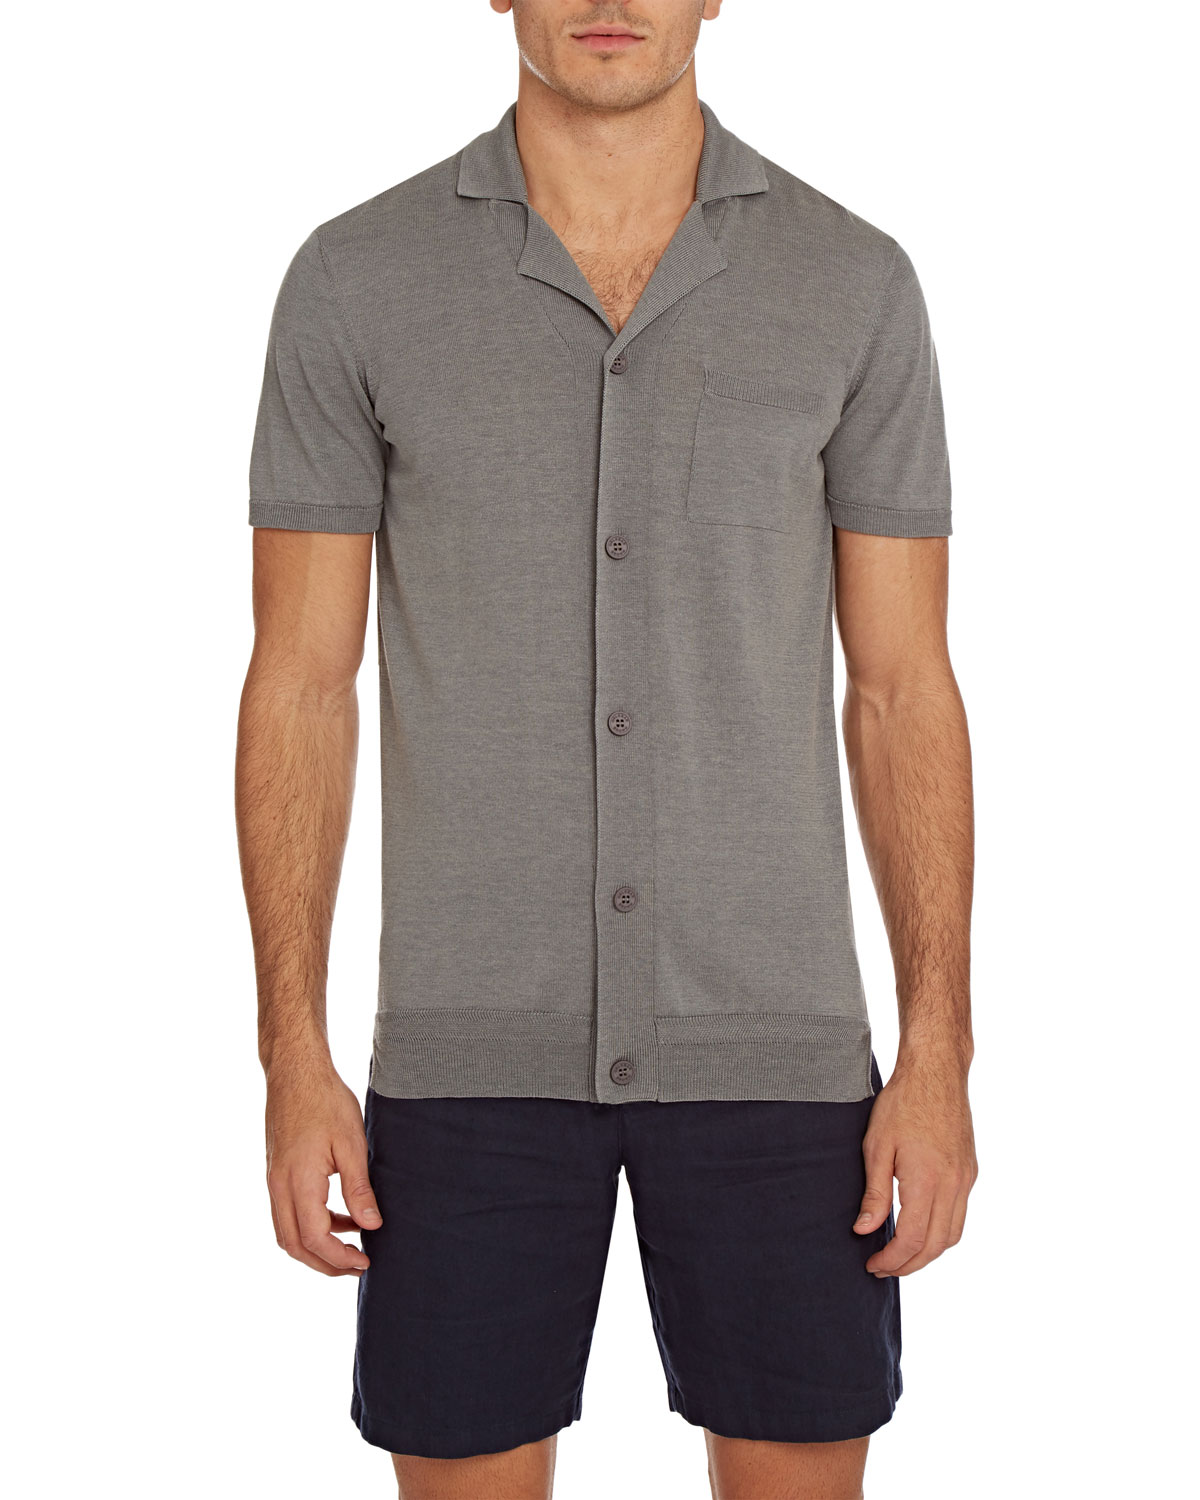 Orlebar Brown T-shirts MEN'S COLMAN COTTON/SILK BUTTON-DOWN SHIRT